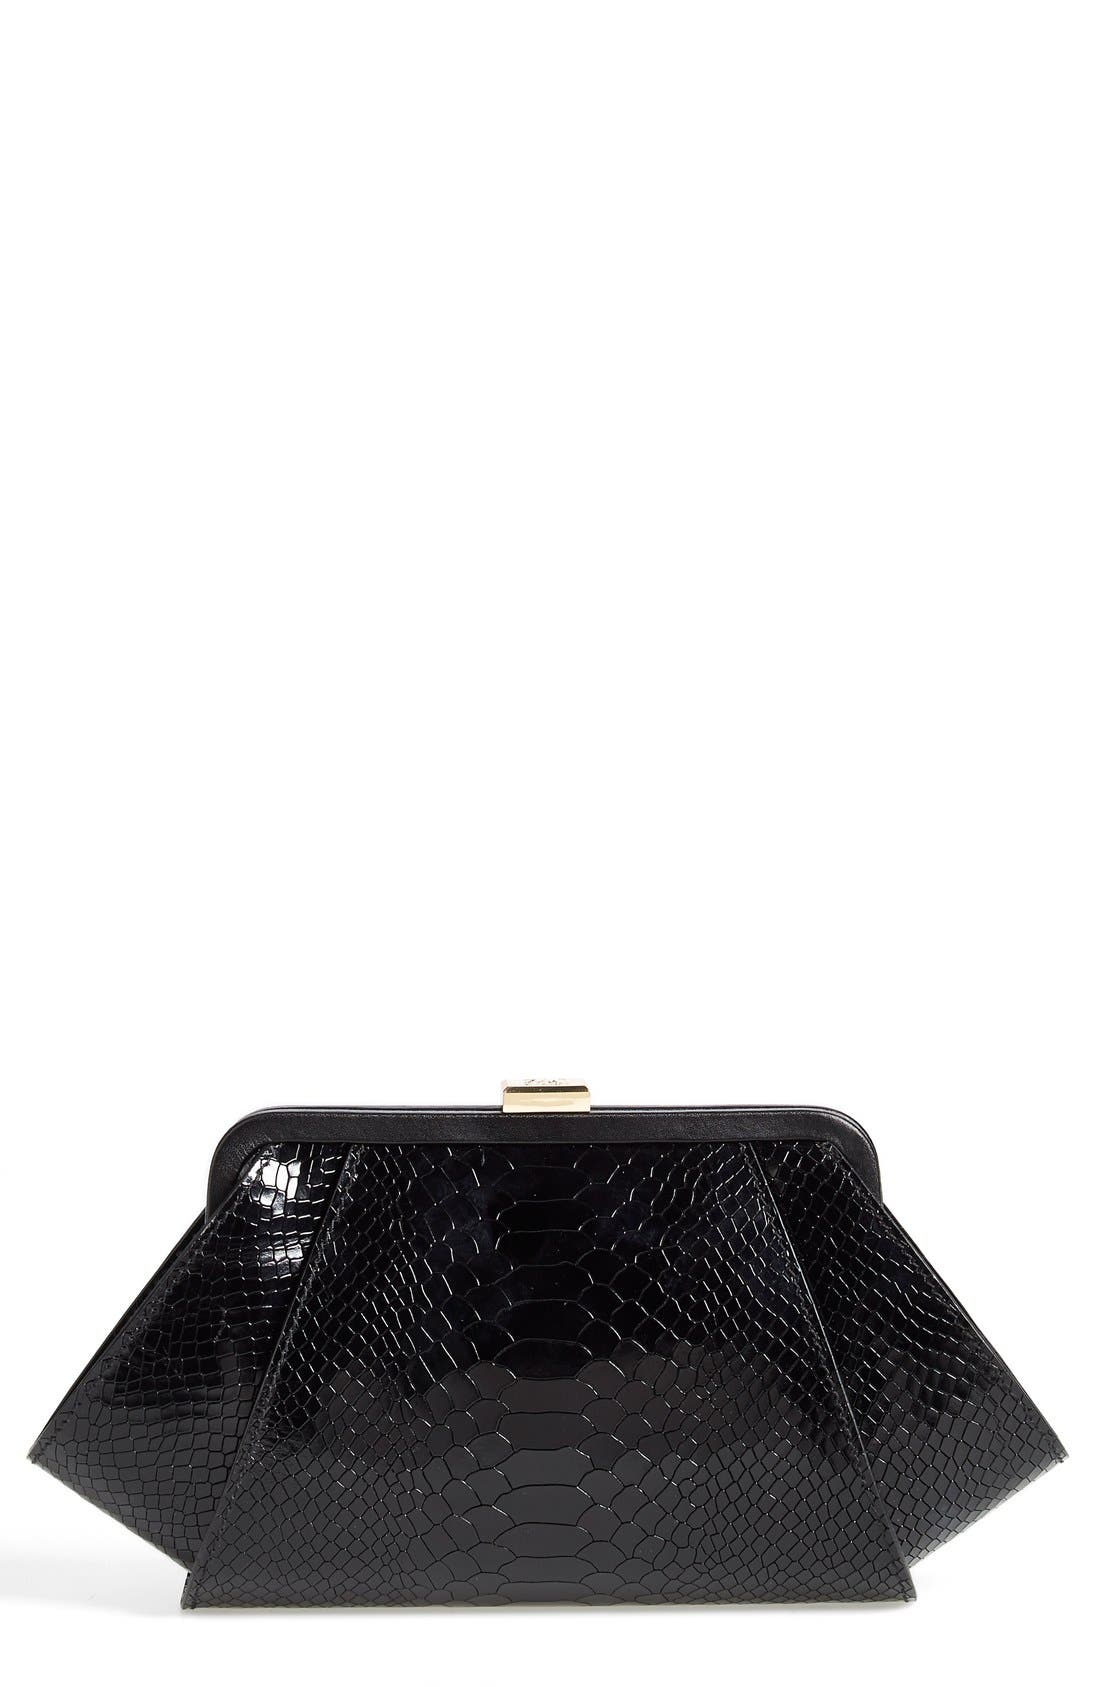 Alternate Image 1 Selected - ZAC Zac Posen 'Posen' Snake Embossed Leather Clutch